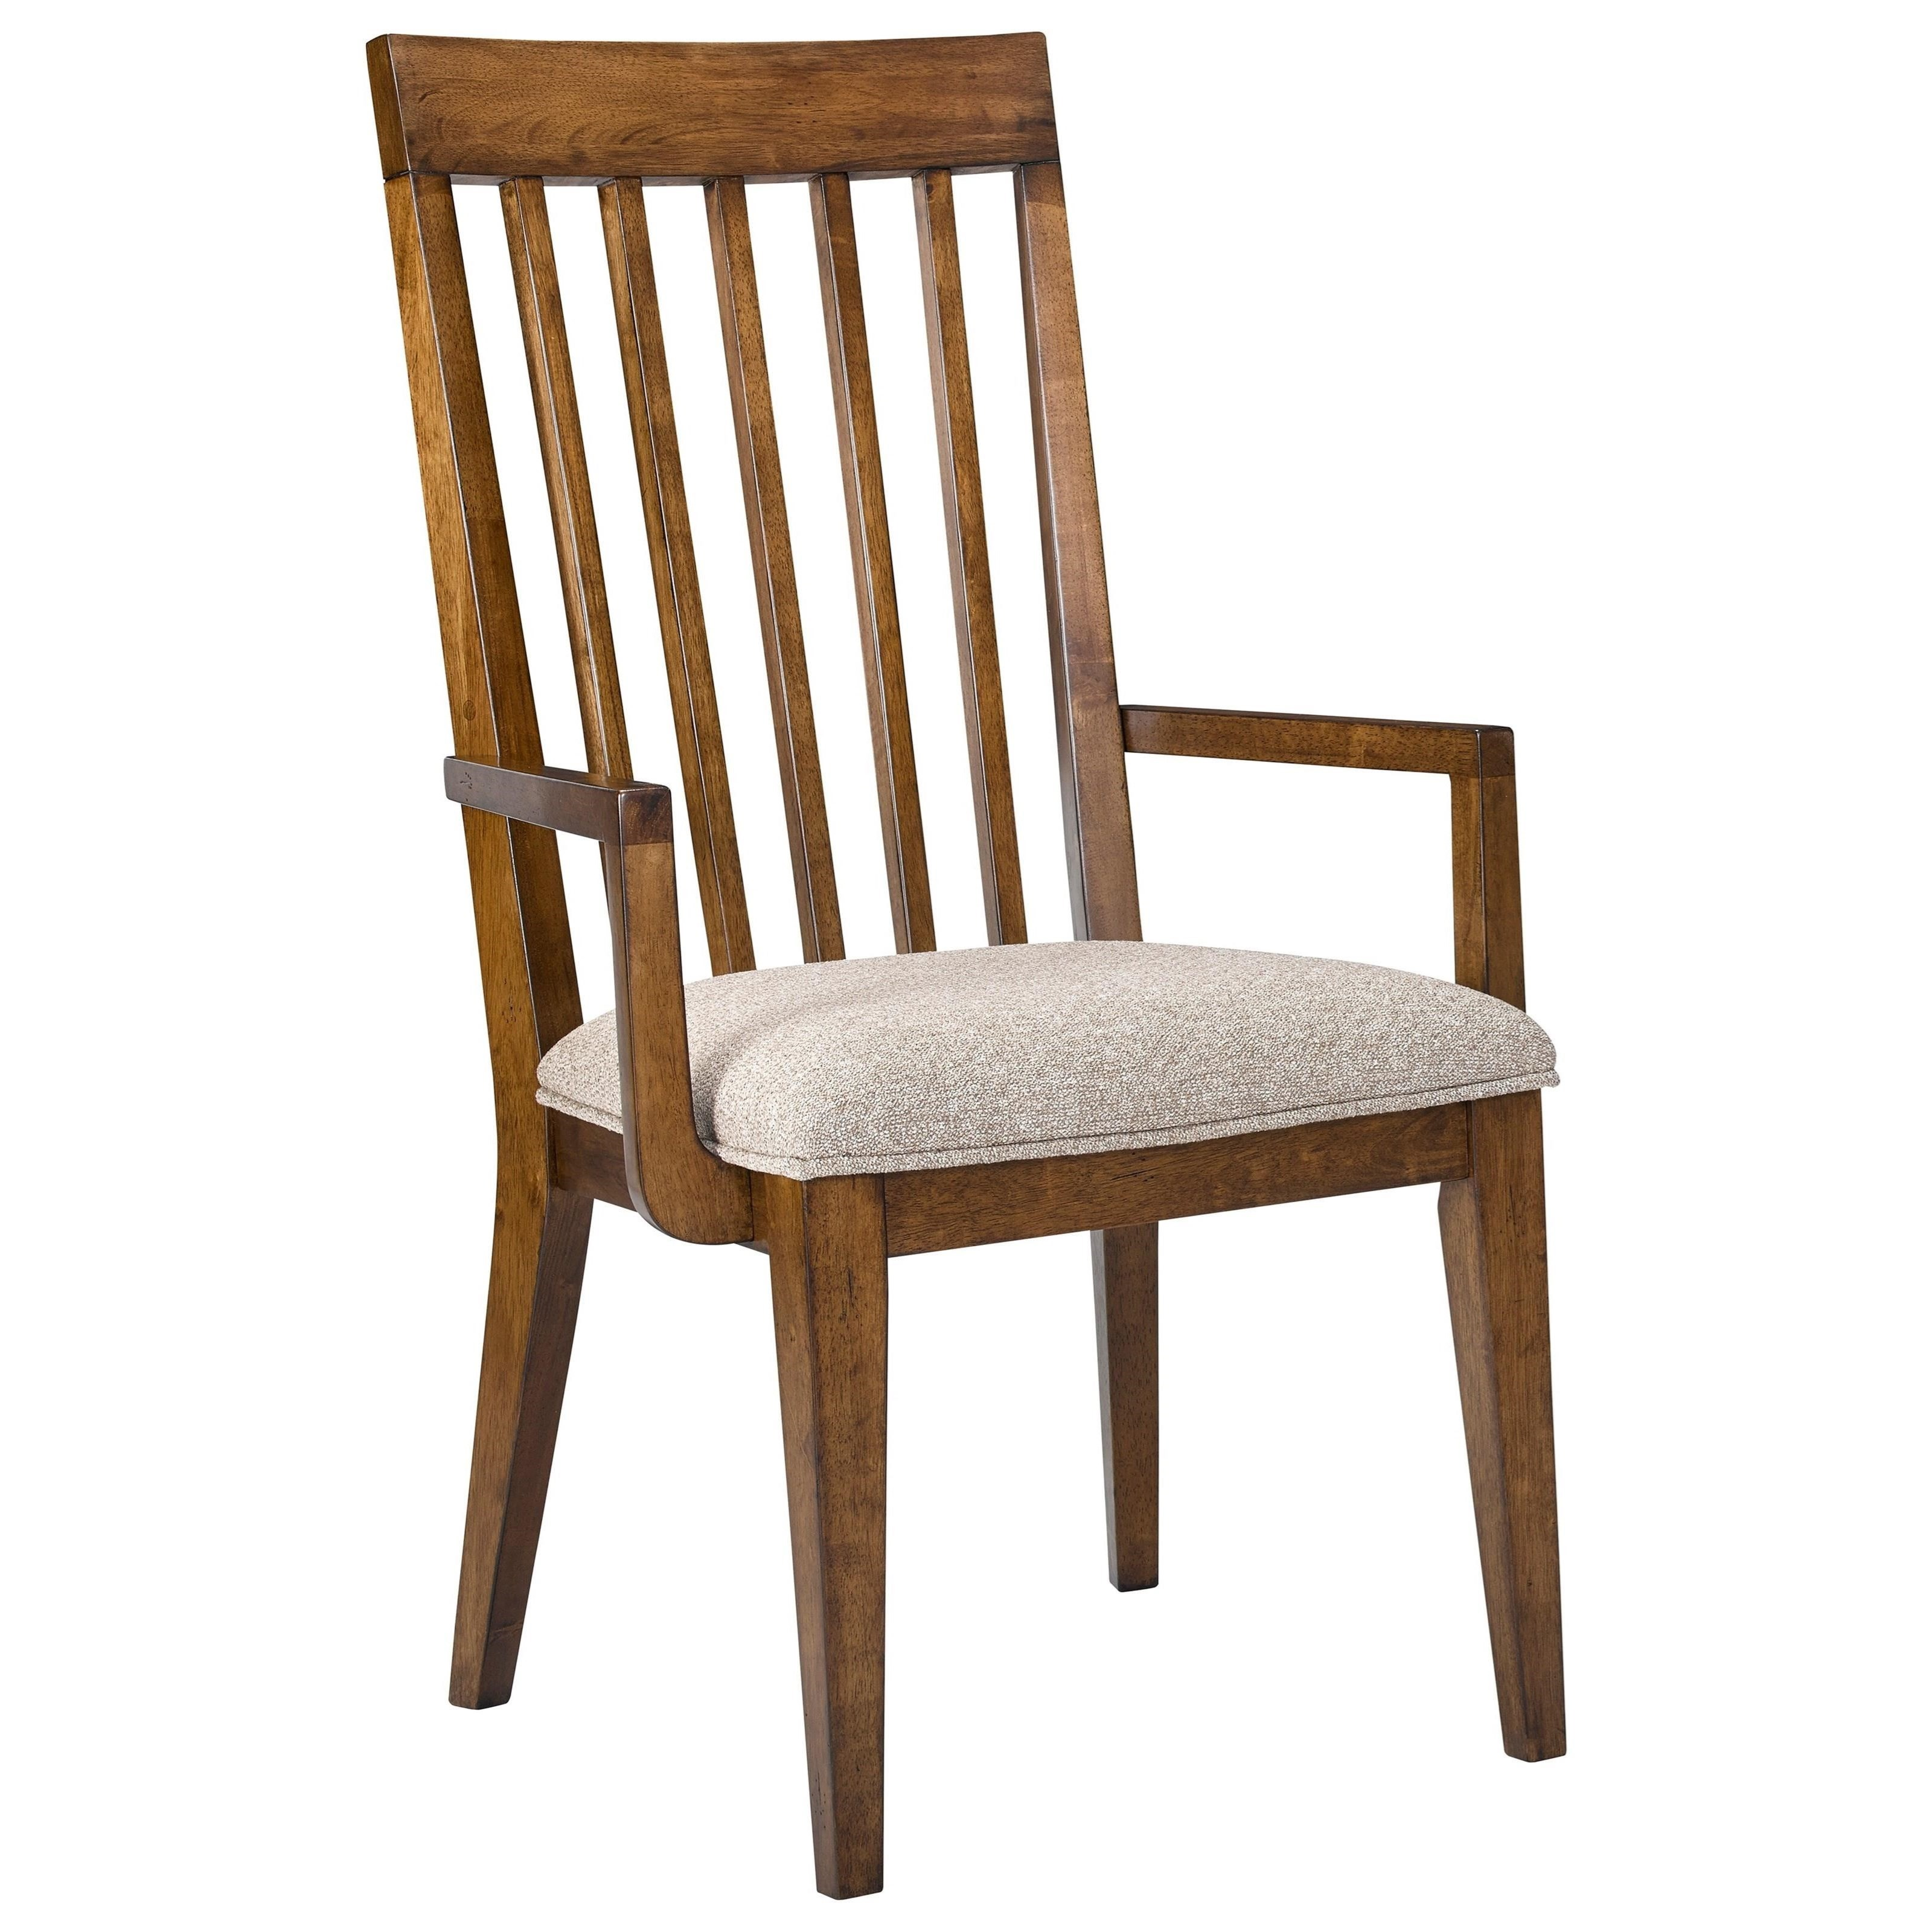 Broyhill furniture winslow park upholstered seat arm chair for Park chair design